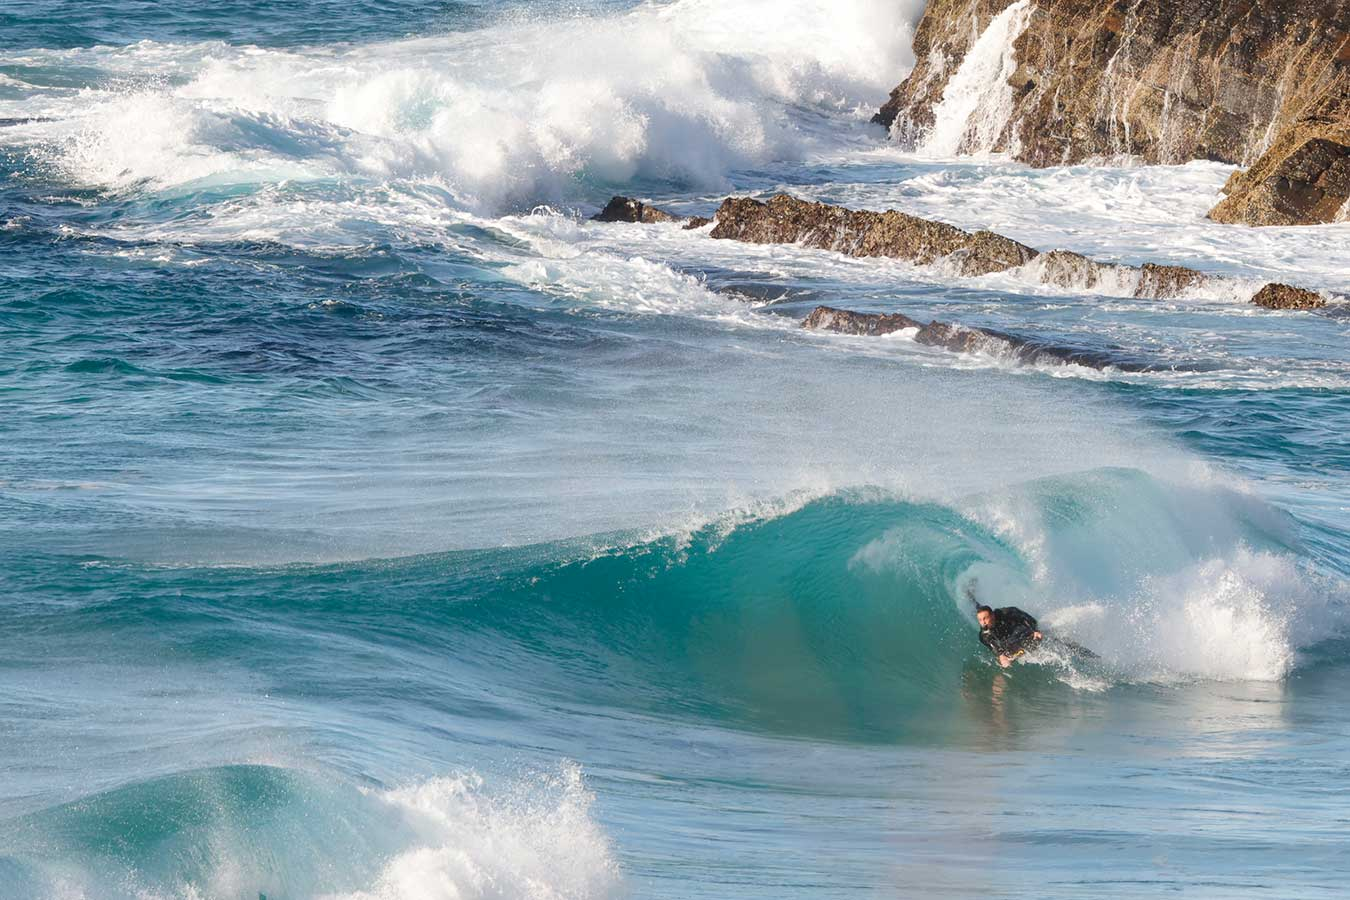 surfer-mid-aqua-wave-curl-with-rocks-in-background